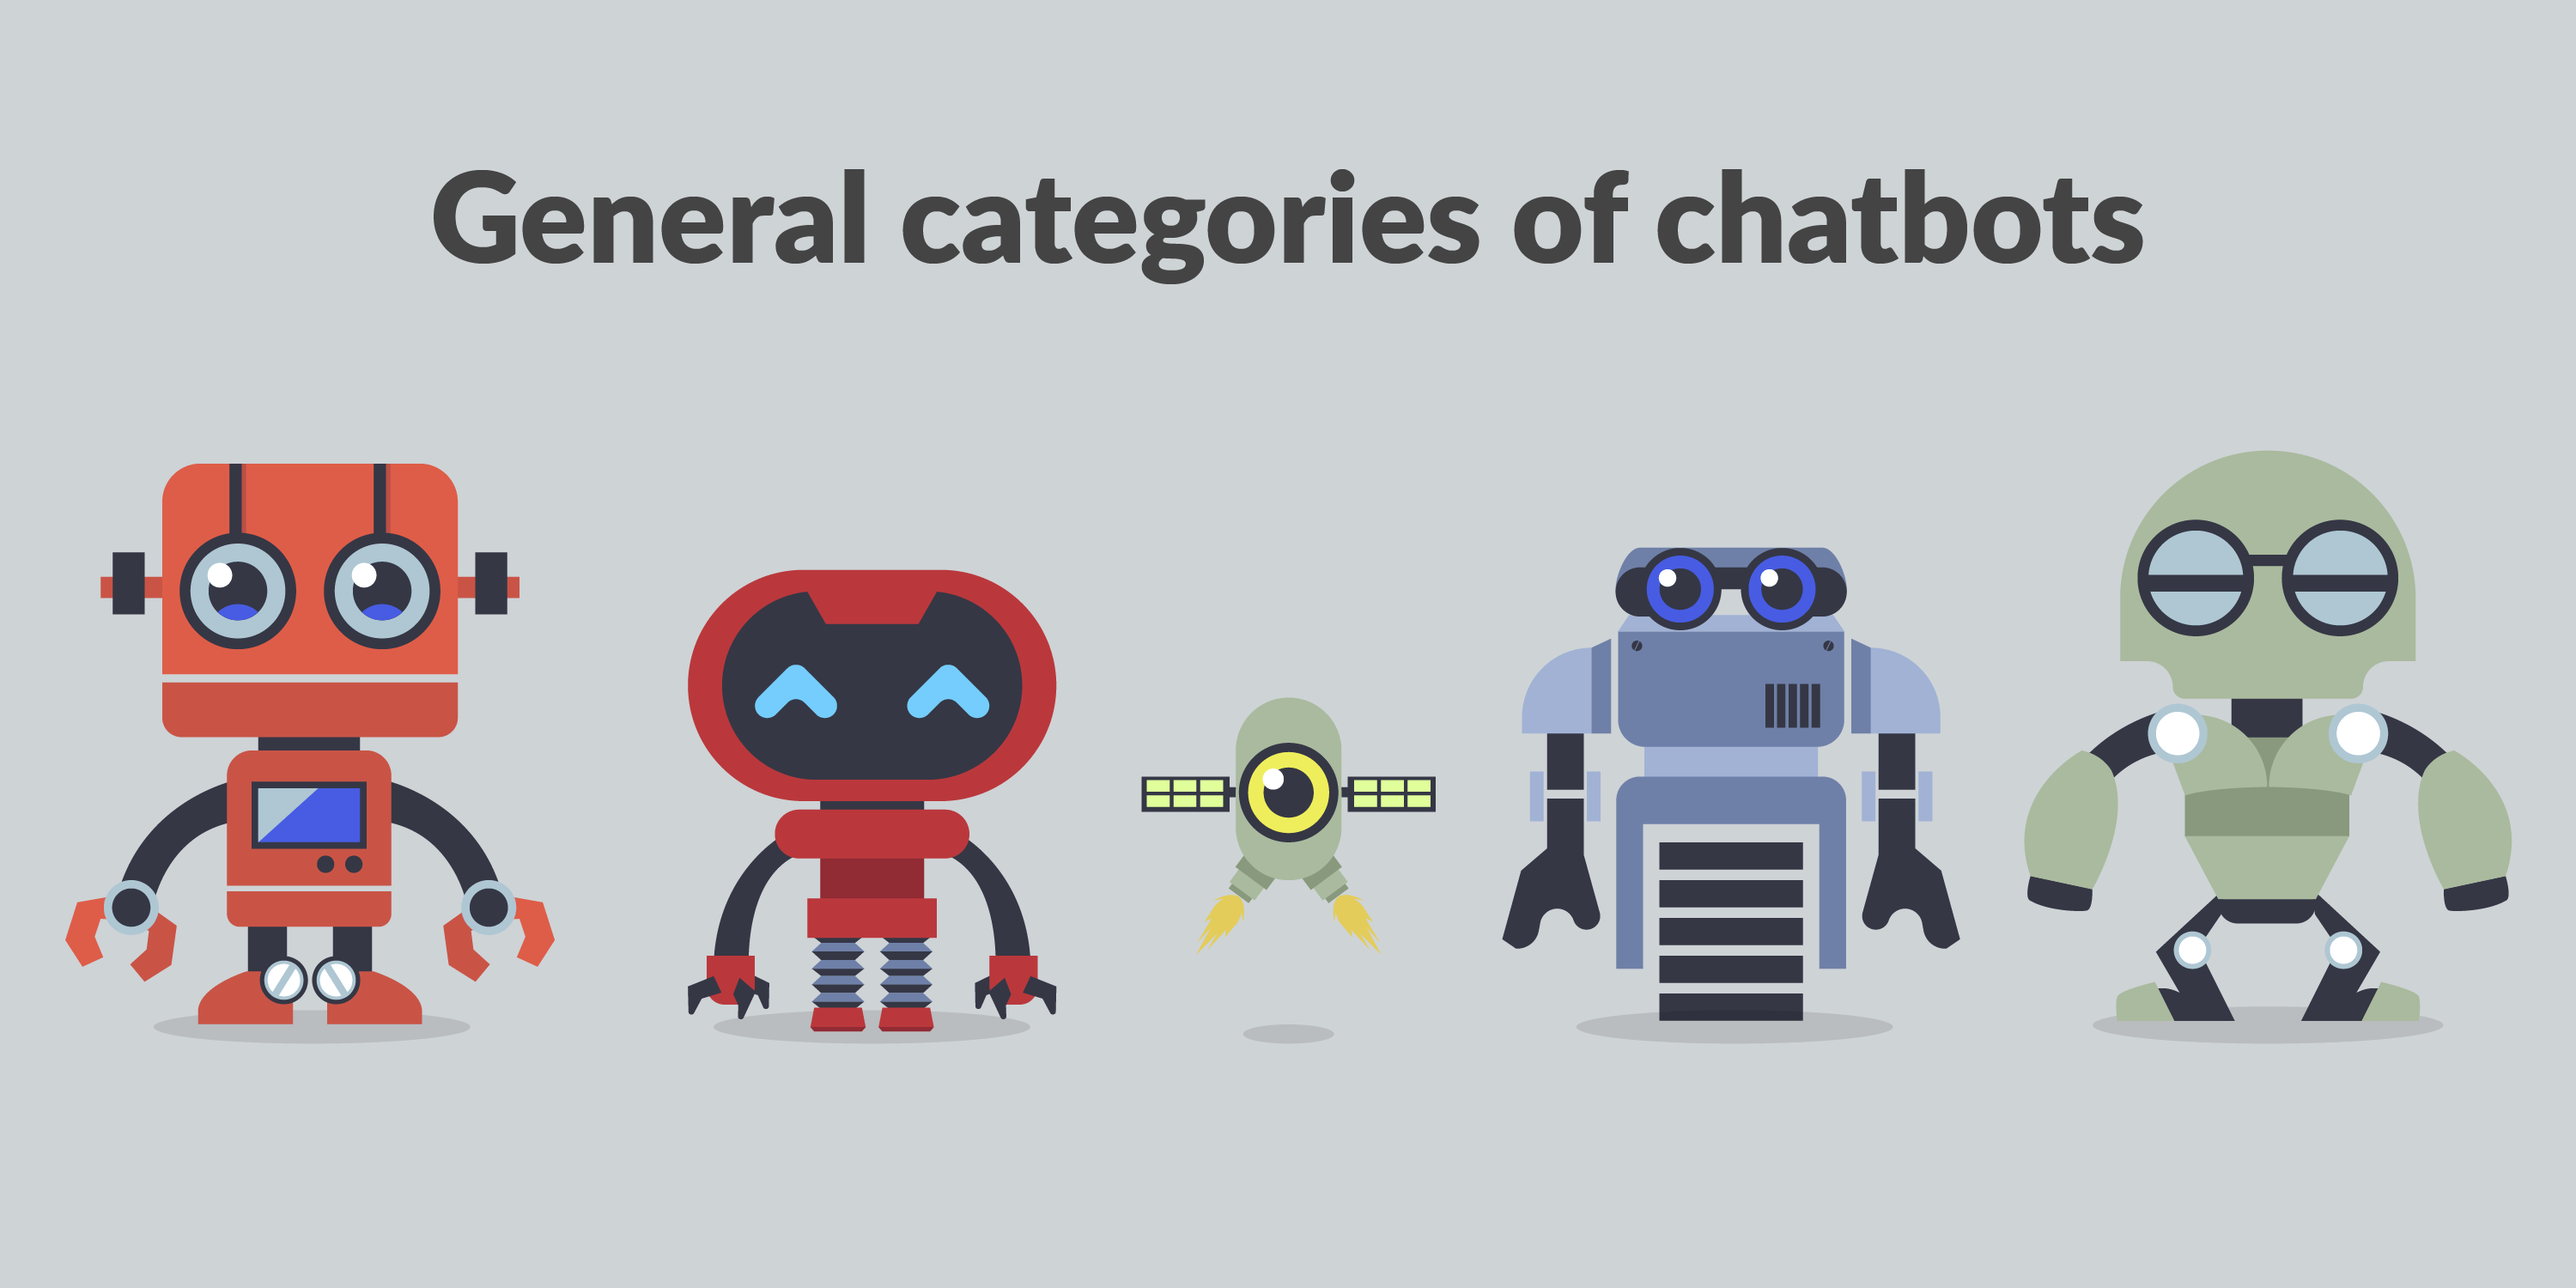 GENERAL CATEGORIES OF CHATBOTS